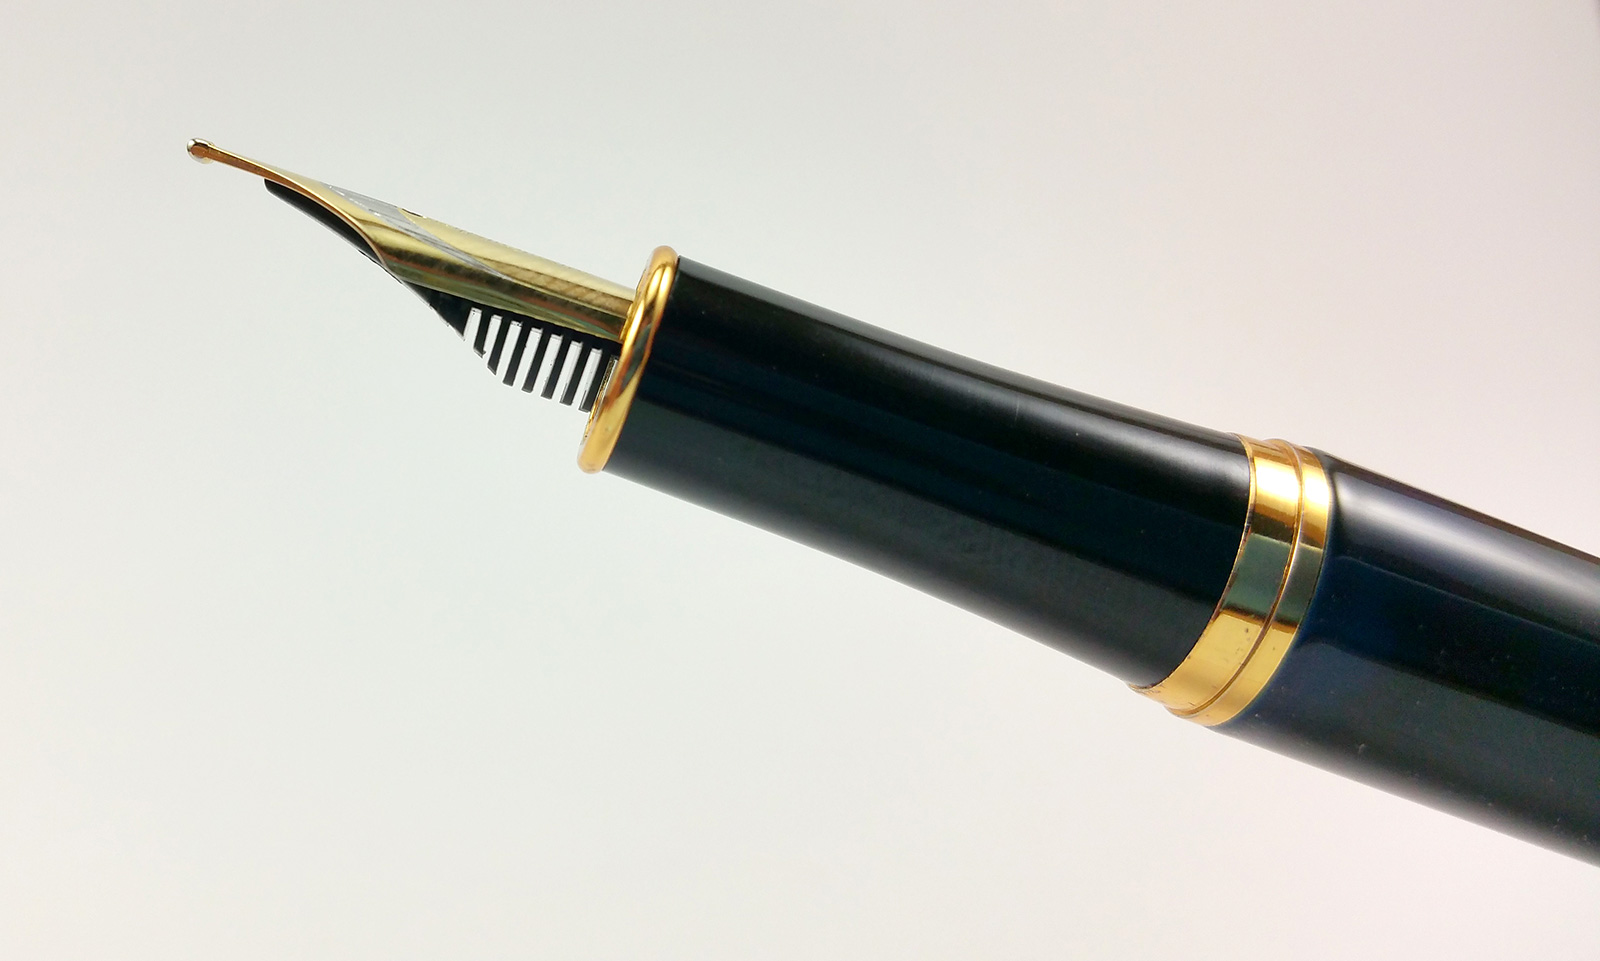 Baoer 388 Fountain Pen Nib and Feed